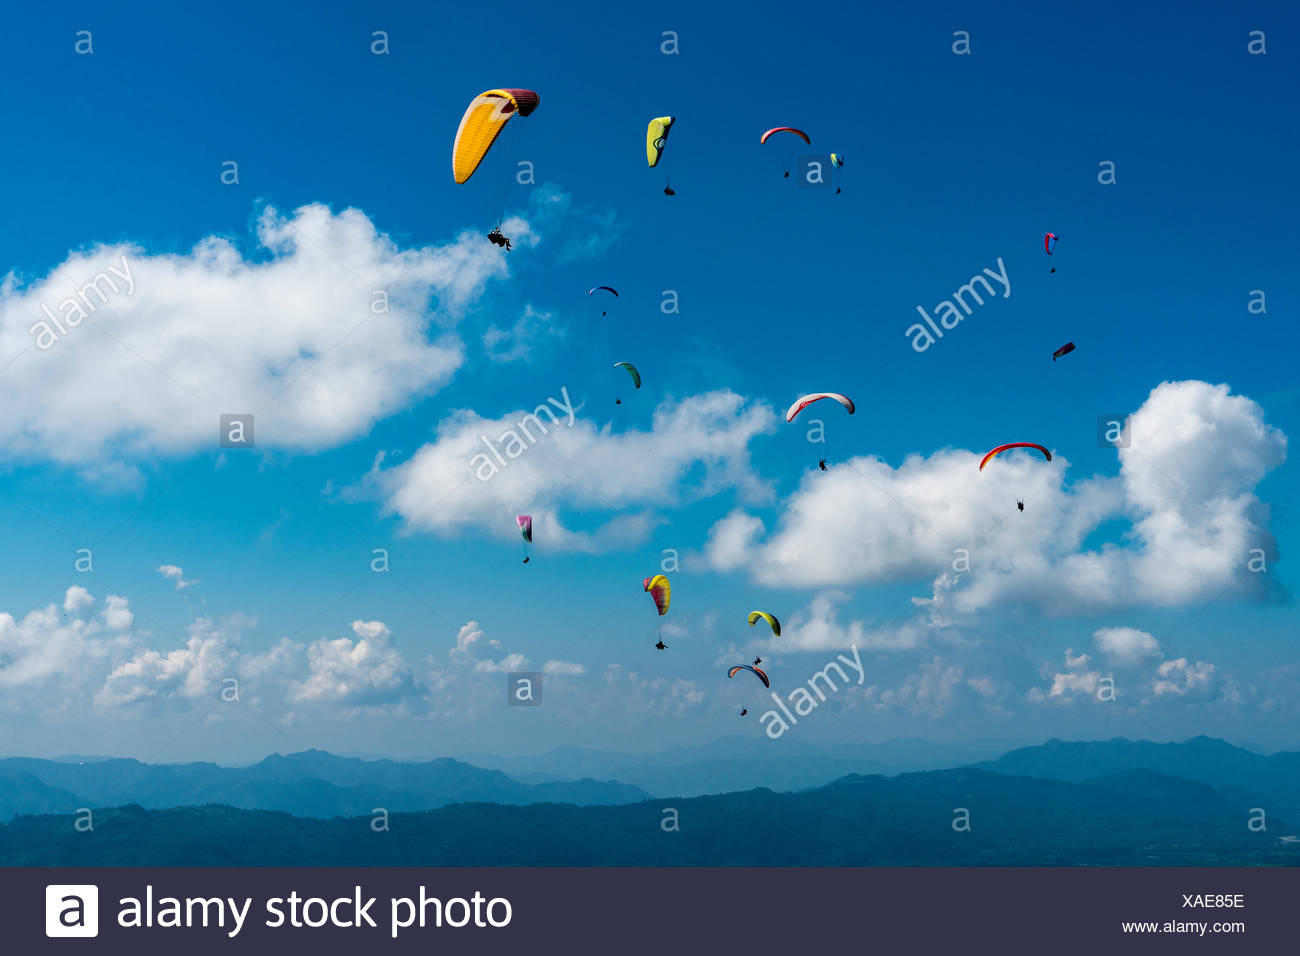 Many paragliders are flying over Pokhara and Phewa Lake, Sarangkot, Kaski District, Nepal - Stock Image